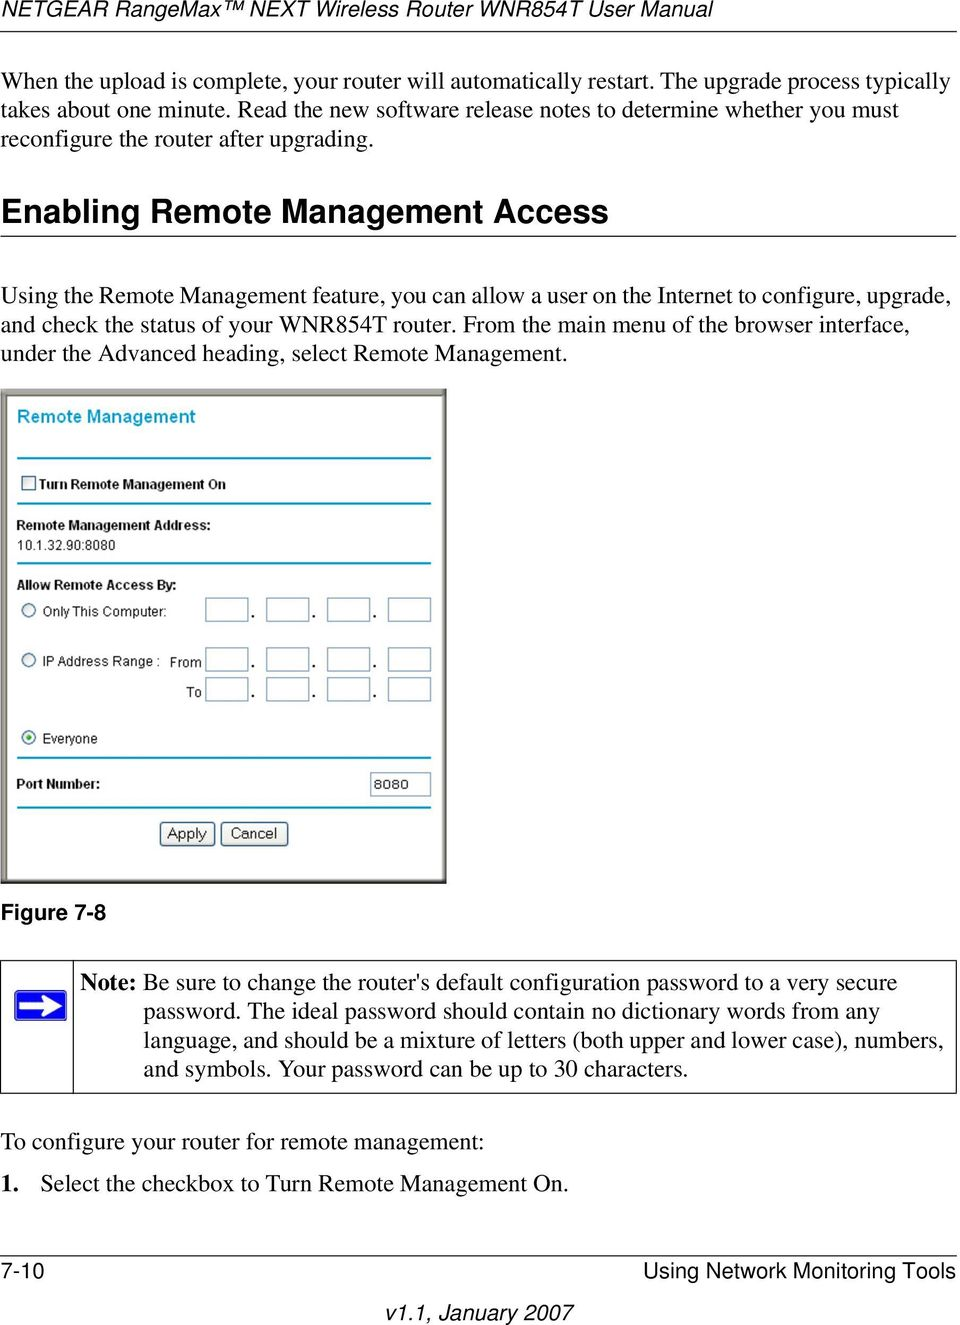 Enabling Remote Management Access Using the Remote Management feature, you can allow a user on the Internet to configure, upgrade, and check the status of your WNR854T router.